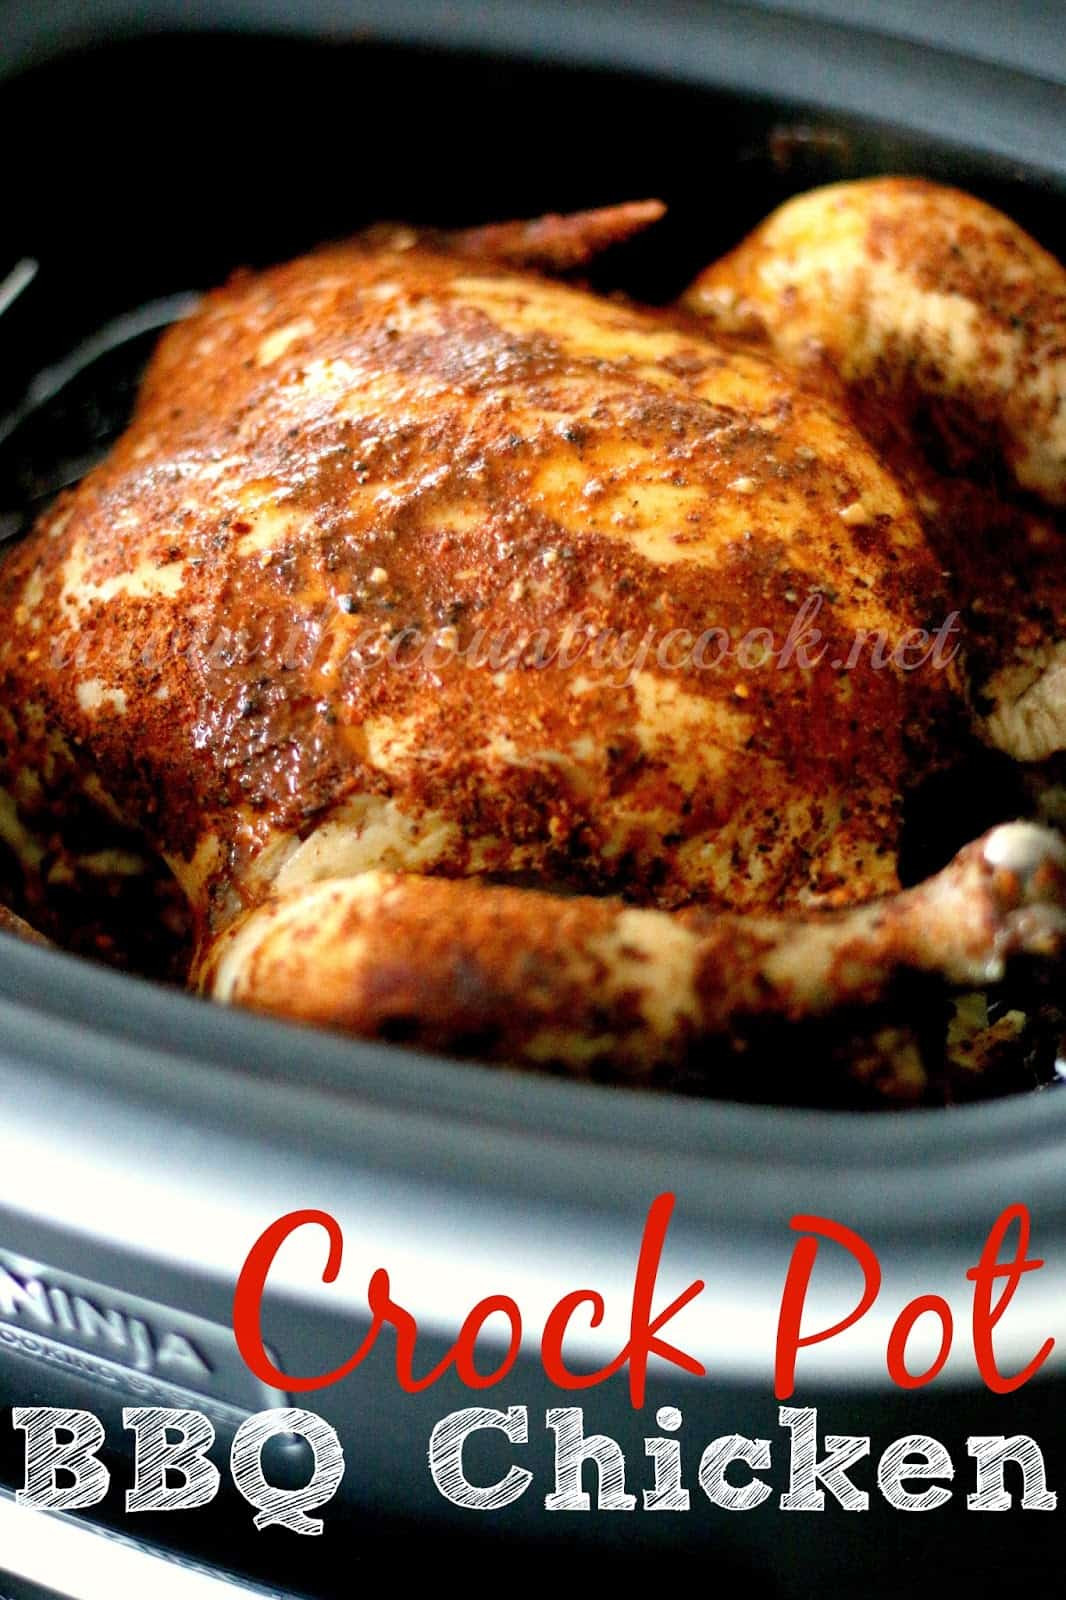 Crockpot Whole Chicken Recipes  Crock Pot Whole BBQ Chicken The Country Cook